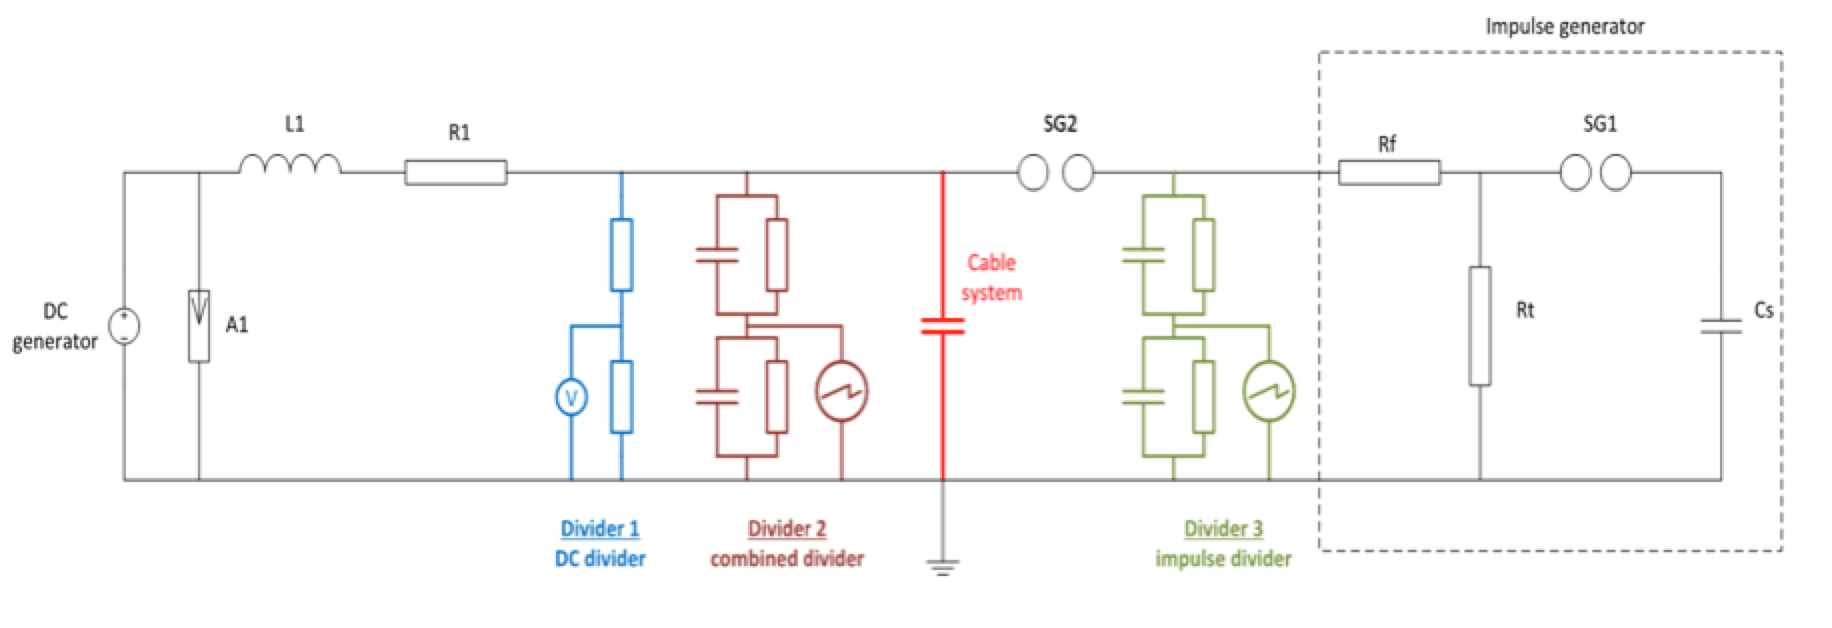 Testing 320 kV HVDC XLPE Cable Systems Schematic of test circuit for superimposed impulse test of DC cable system